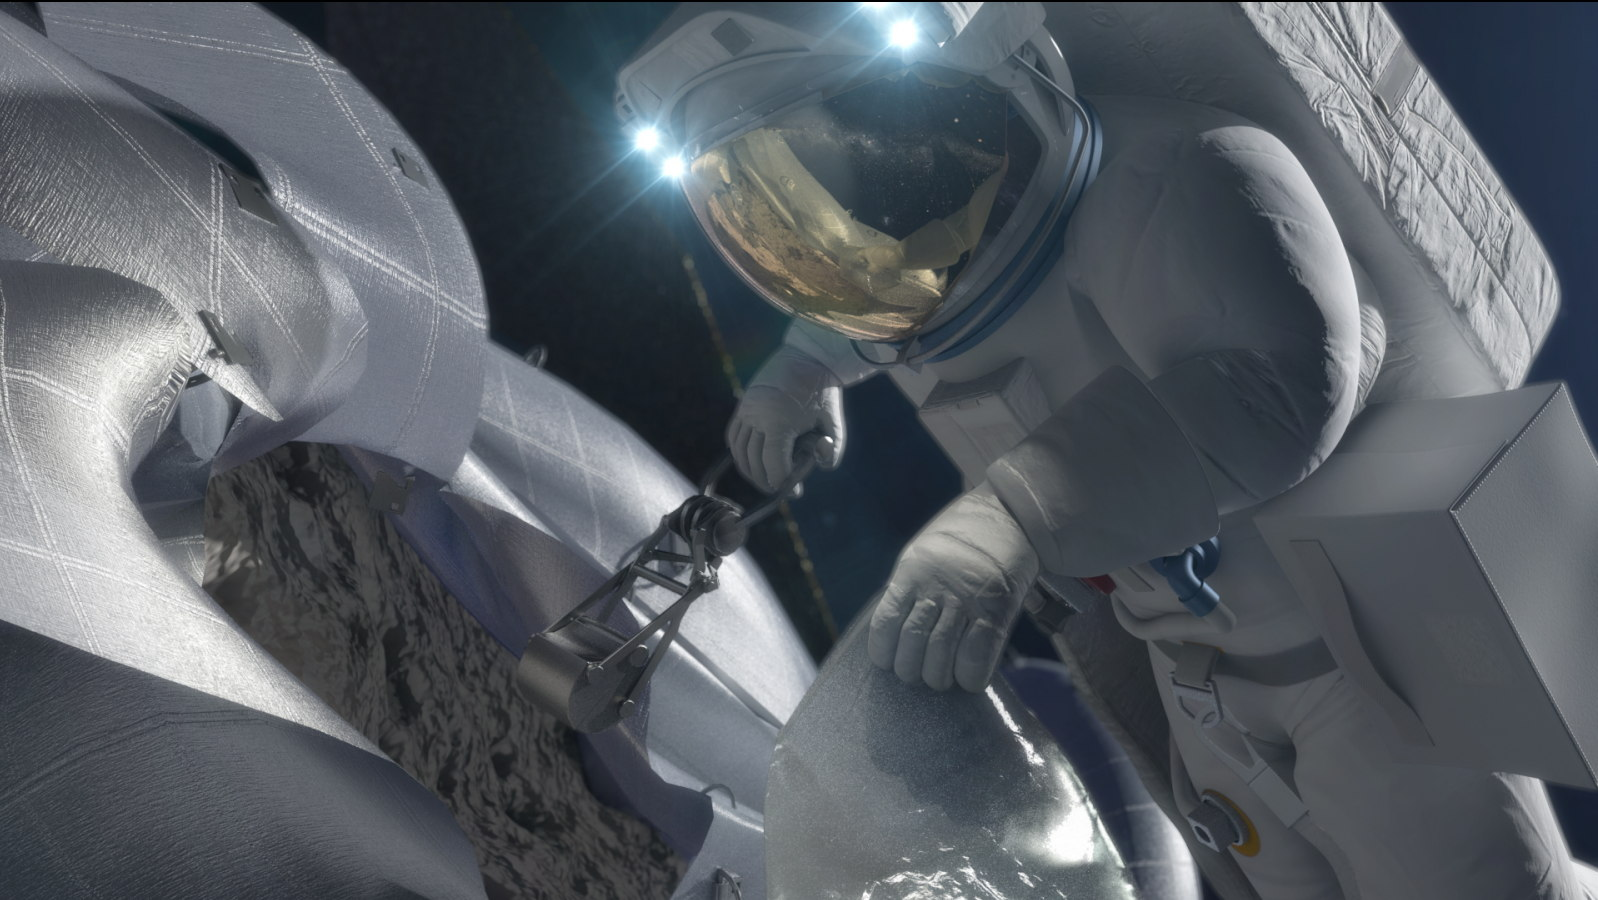 Buzz Aldrin Wants NASA Astronauts to Visit Asteroid in Deep Space